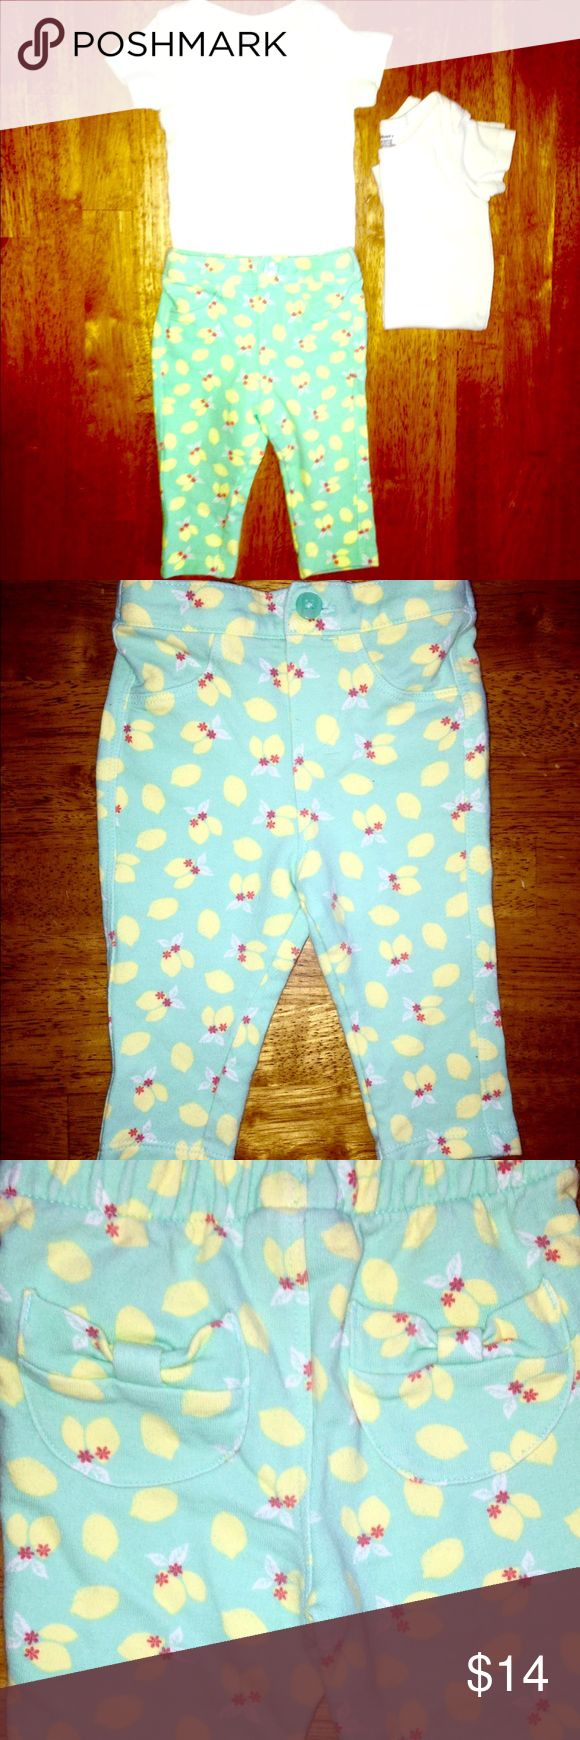 "Turquoise pantsW/Lemon print•soldW/2 White onesies ""Cherokee"" Light Turquoise pants w/ adorable Lemon print 🍋🍋🍋 There are two back pockets made of bows, as seen in photos. Super cute! These come with two Gerber onesies. Total of THREE pieces. 🍋✨EXCELLENT CONDITION✨🍋 Cherokee & Gerber Matching Sets"